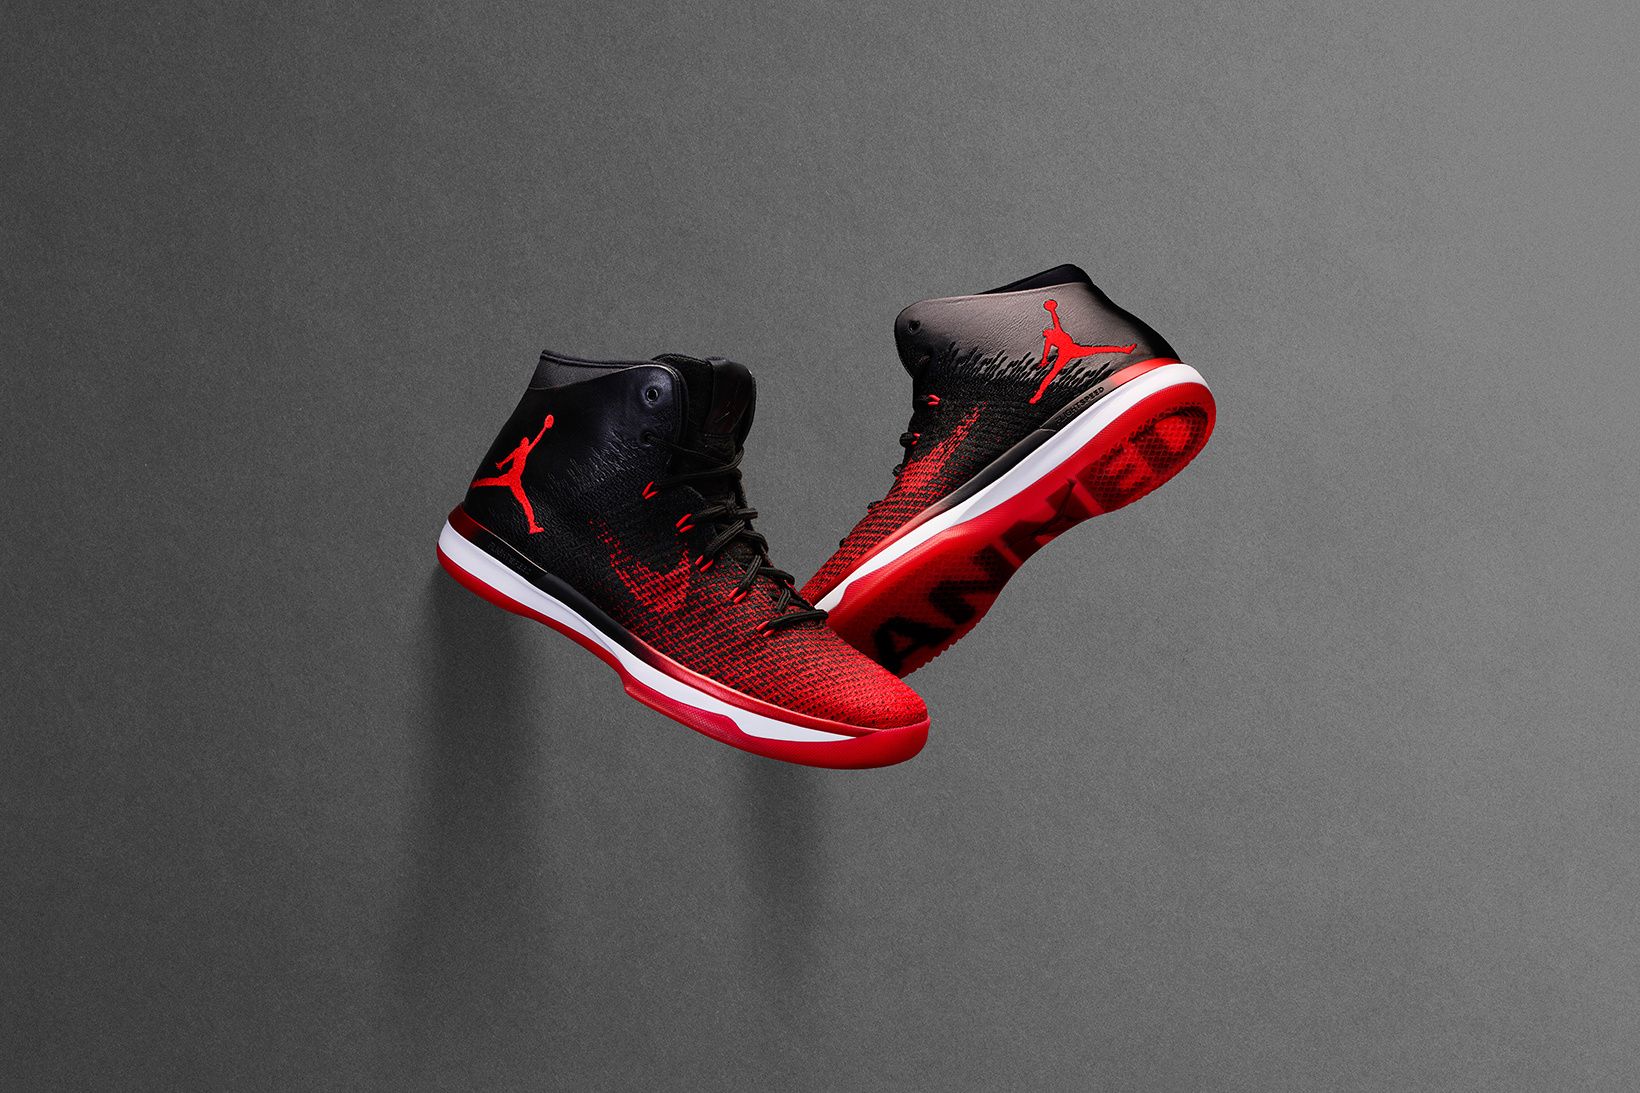 2024f7a52d6 Jordan Brand Officially Unleashes the Air Jordan XXXI